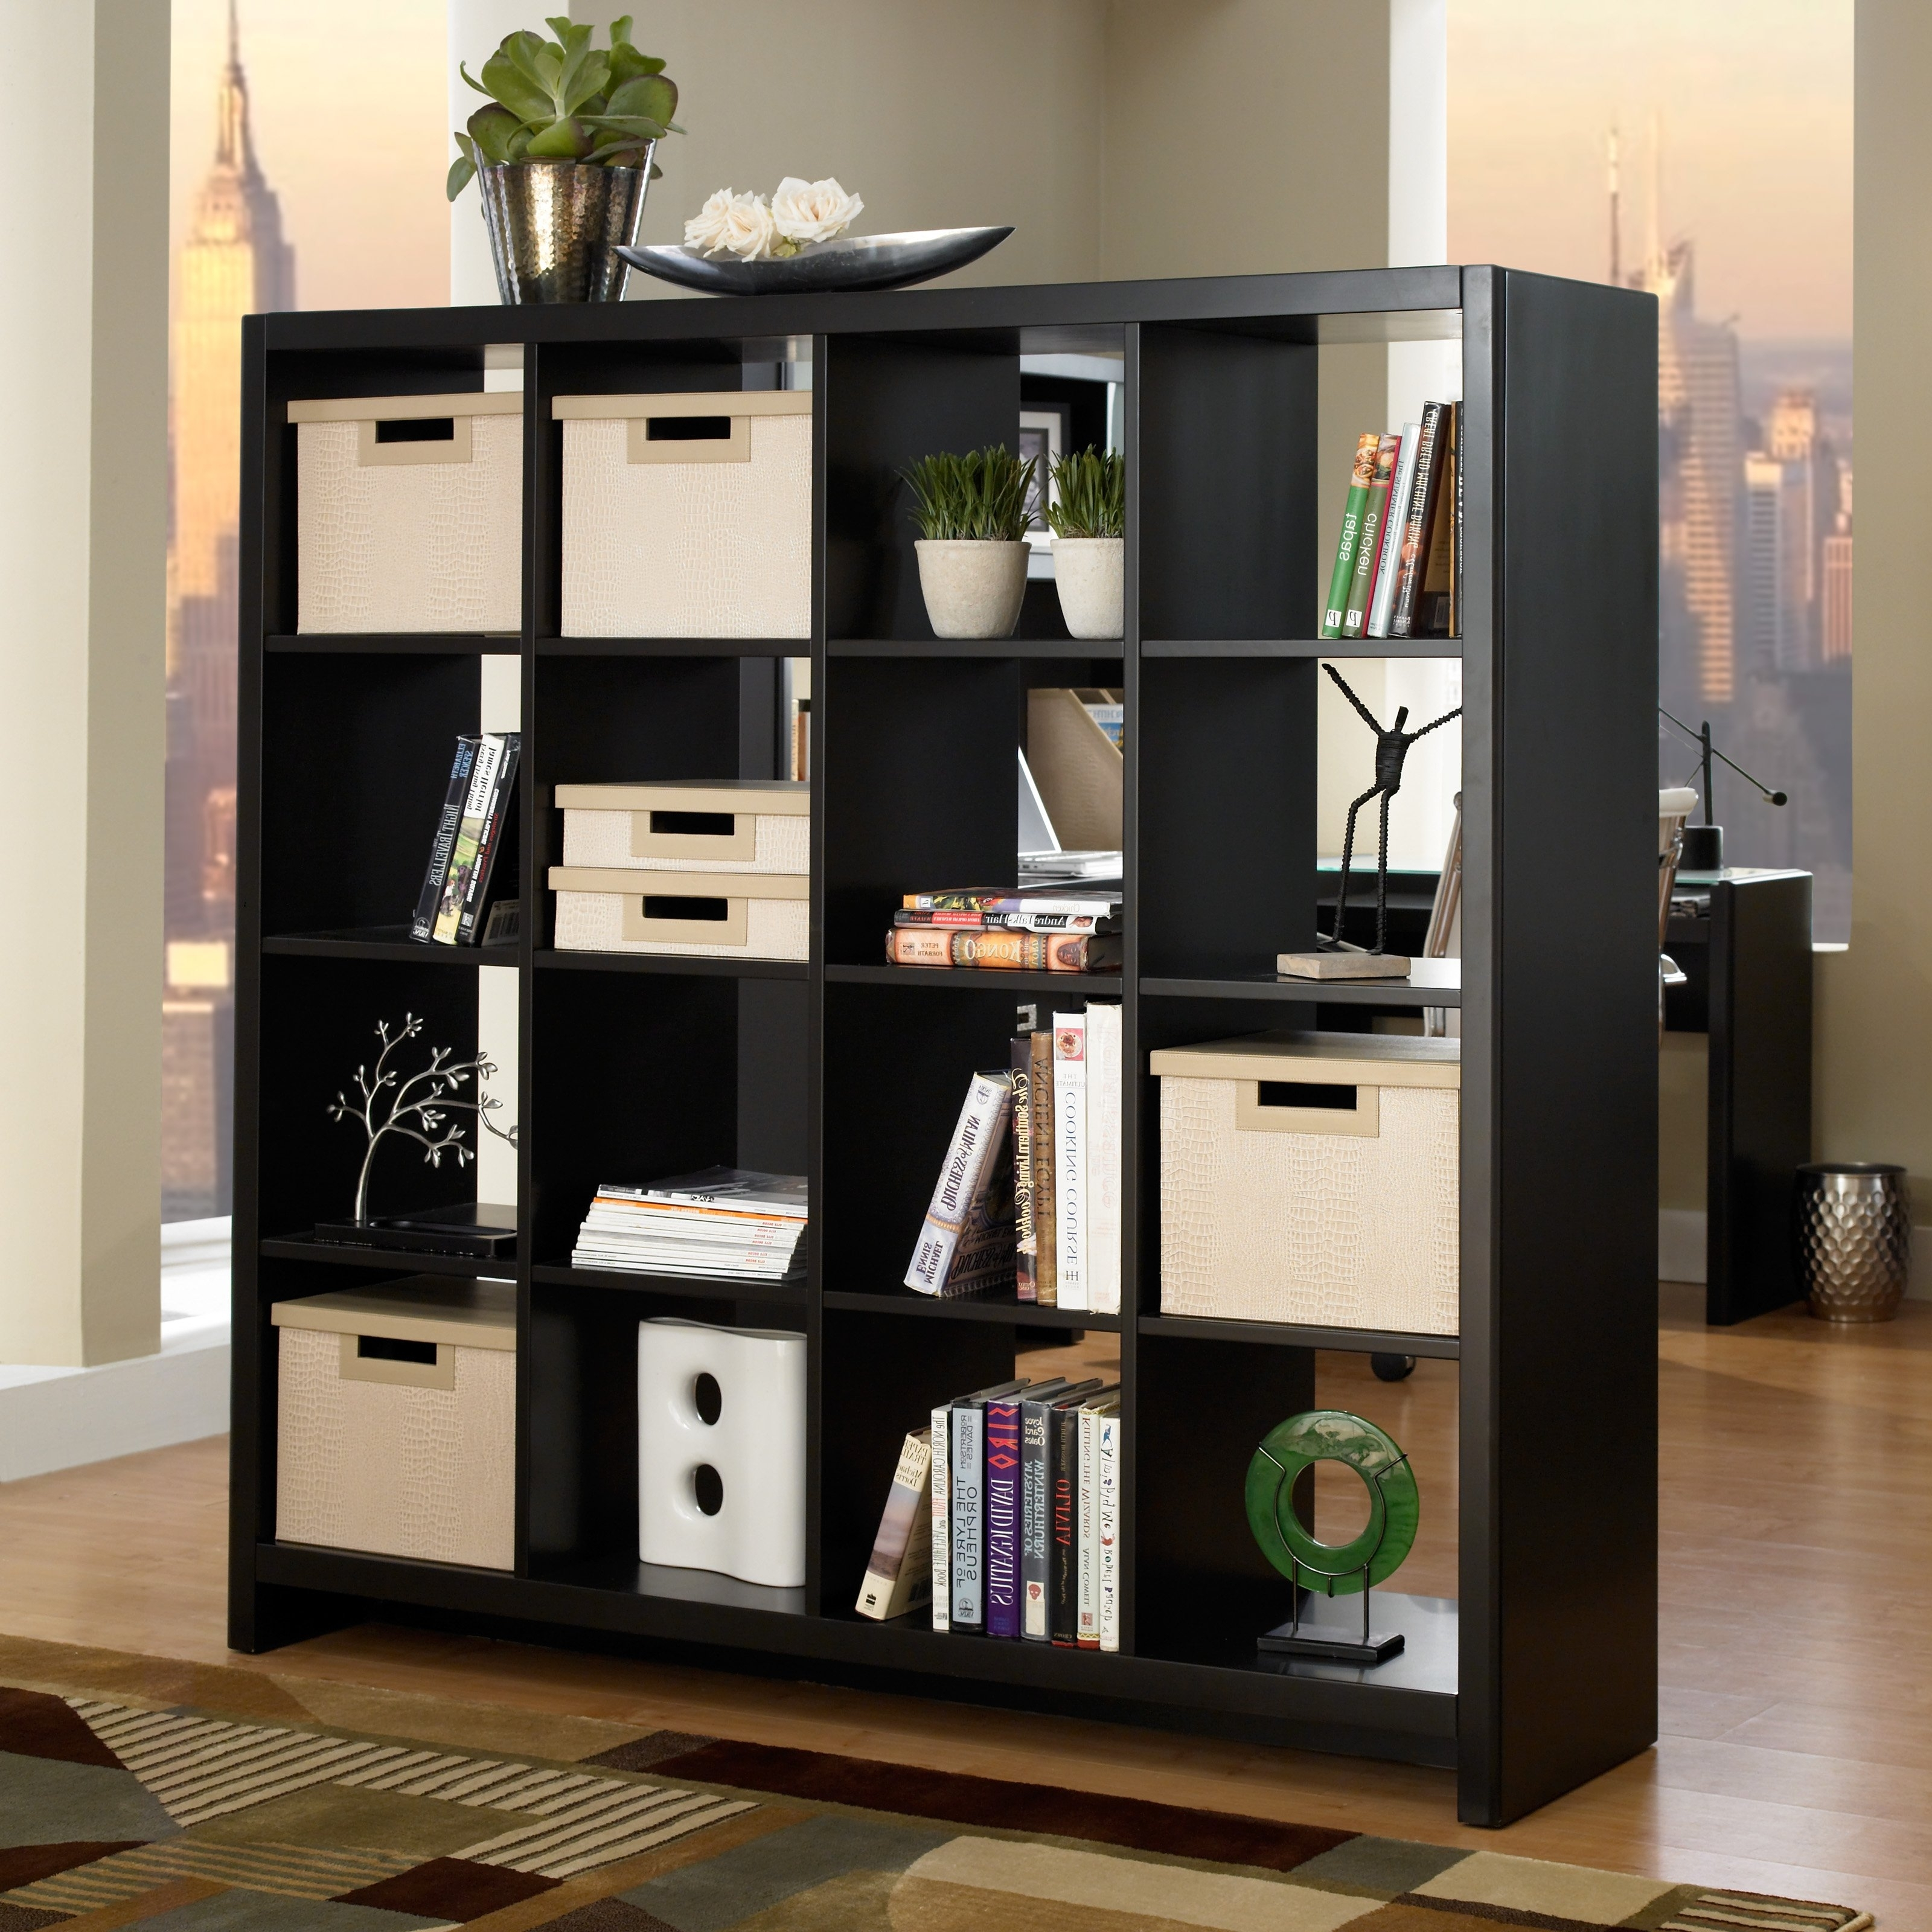 Tall Black Wooden Bookcase With Cubices Shelves Addedcontainer For Popular Bookcases Room Divider (View 11 of 15)